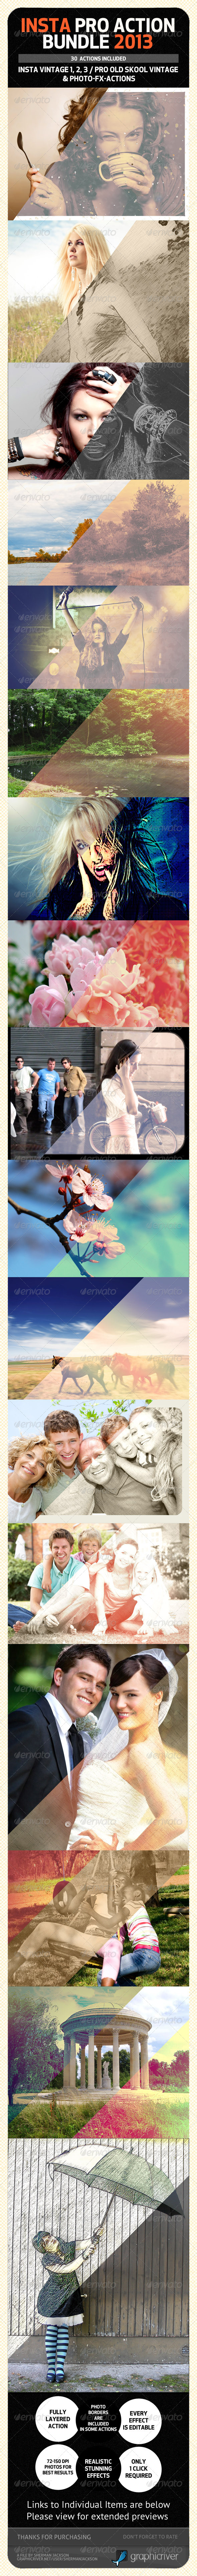 INSTA PRO Premium Action Bundle 2013 - Photo Effects Actions